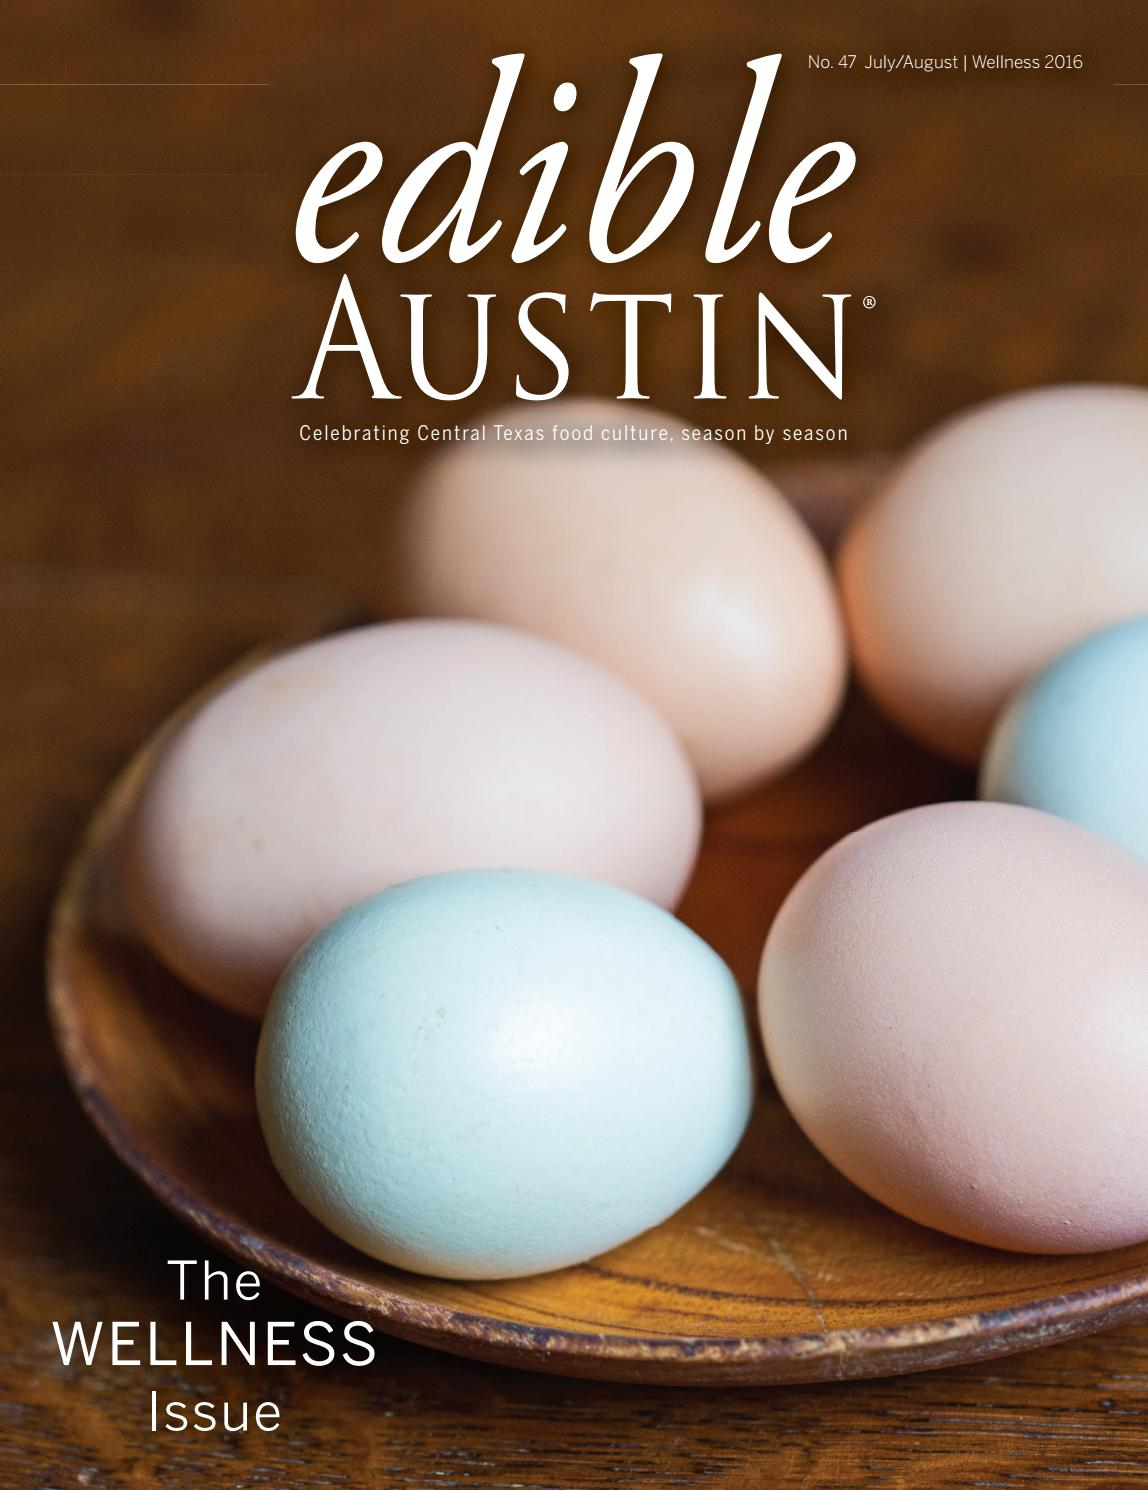 Edible Austin Wellness 2016 by Edible Austin - issuu